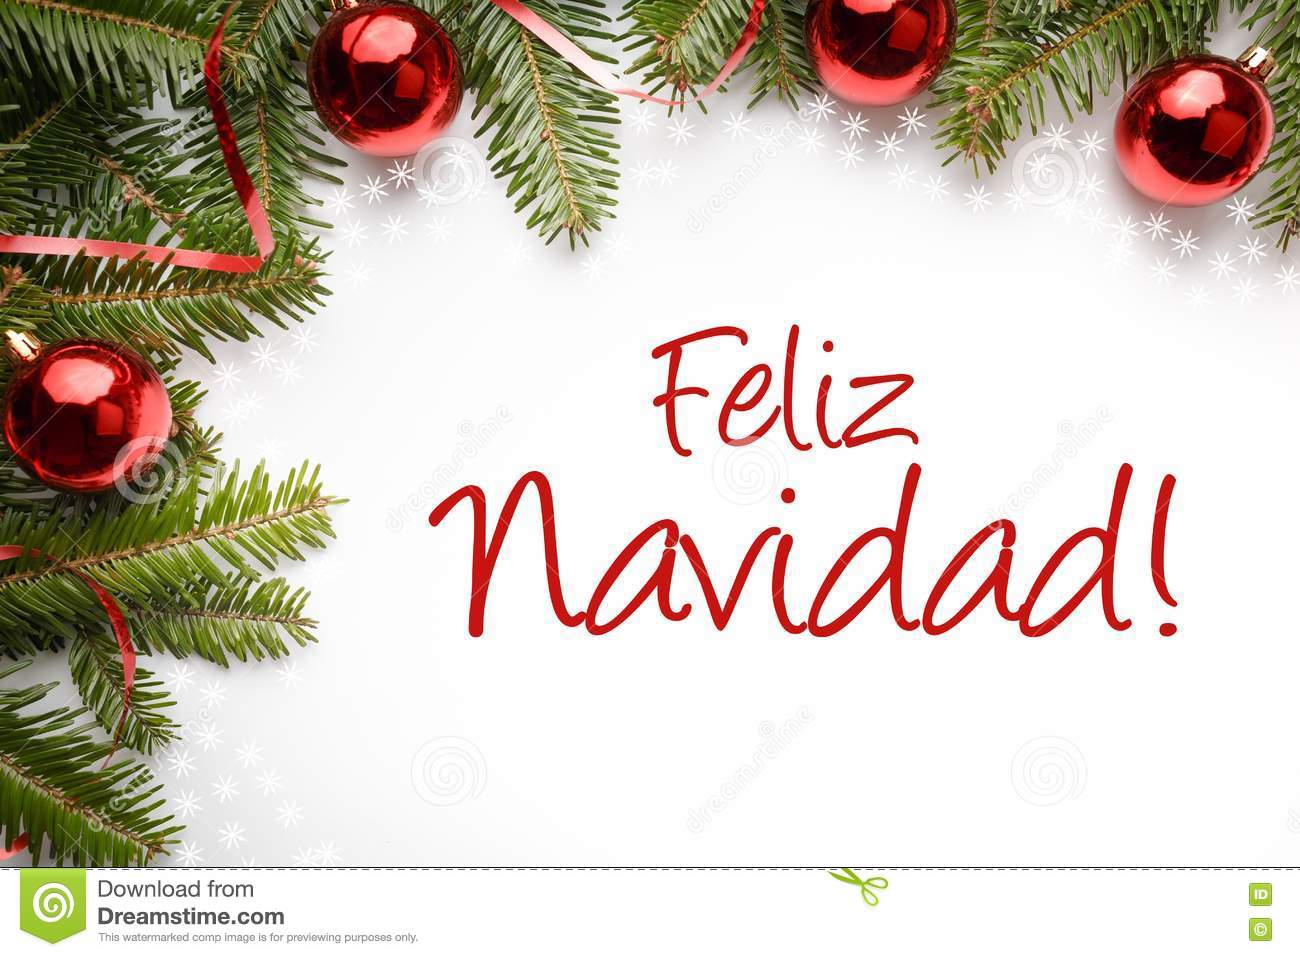 christmas decorations with christmas greeting in spanish feliz navidad merry christmas - Merry Christmas Decorations